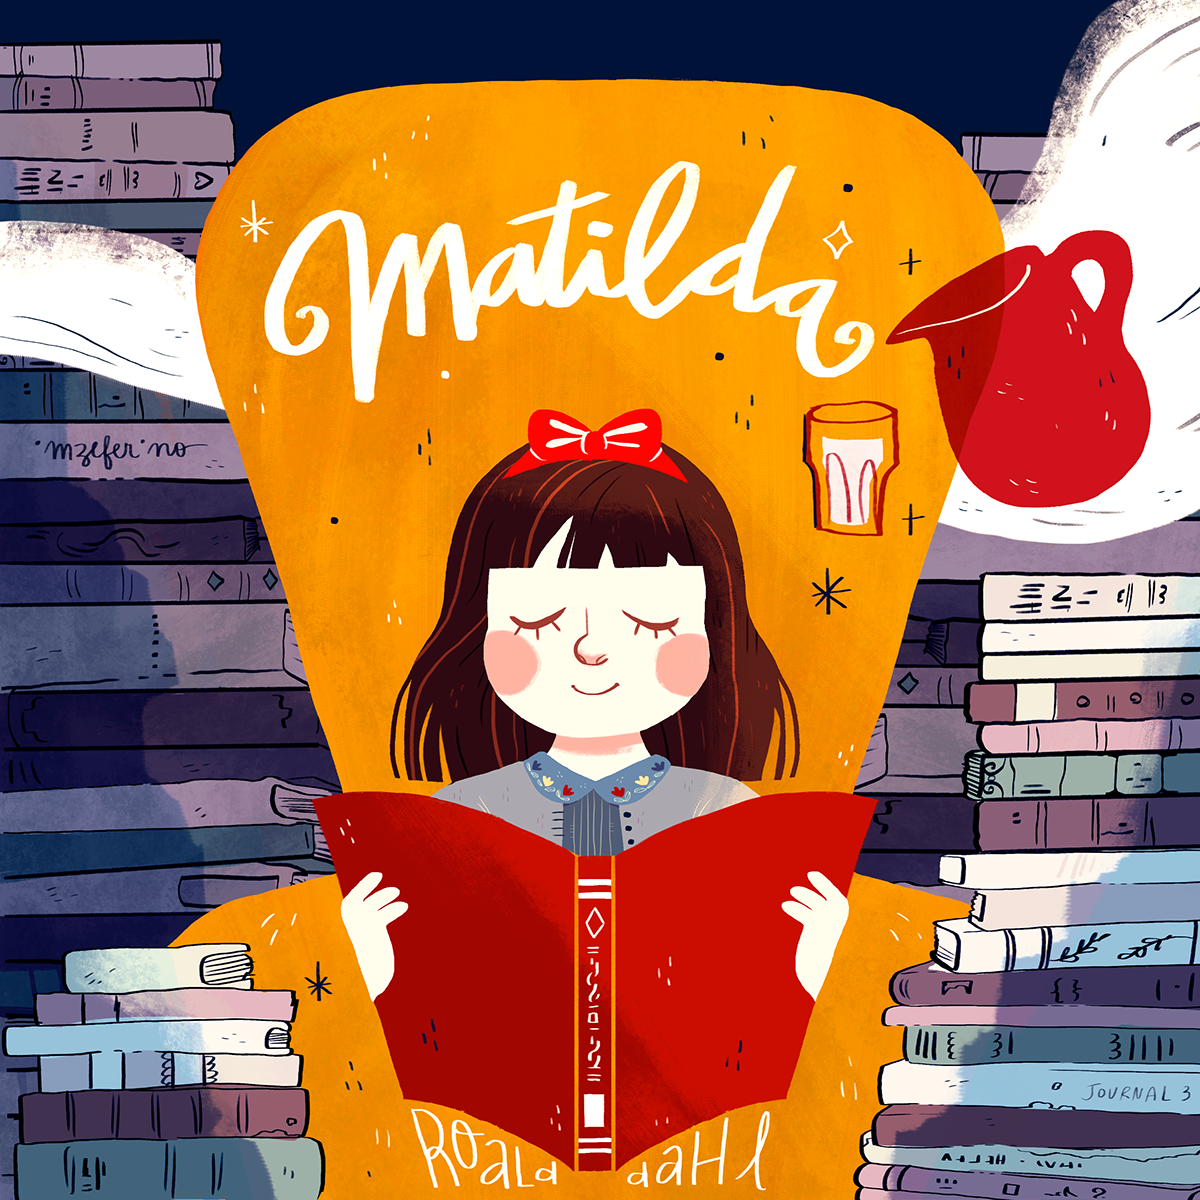 Matilda / cover redesign on Behance (With images